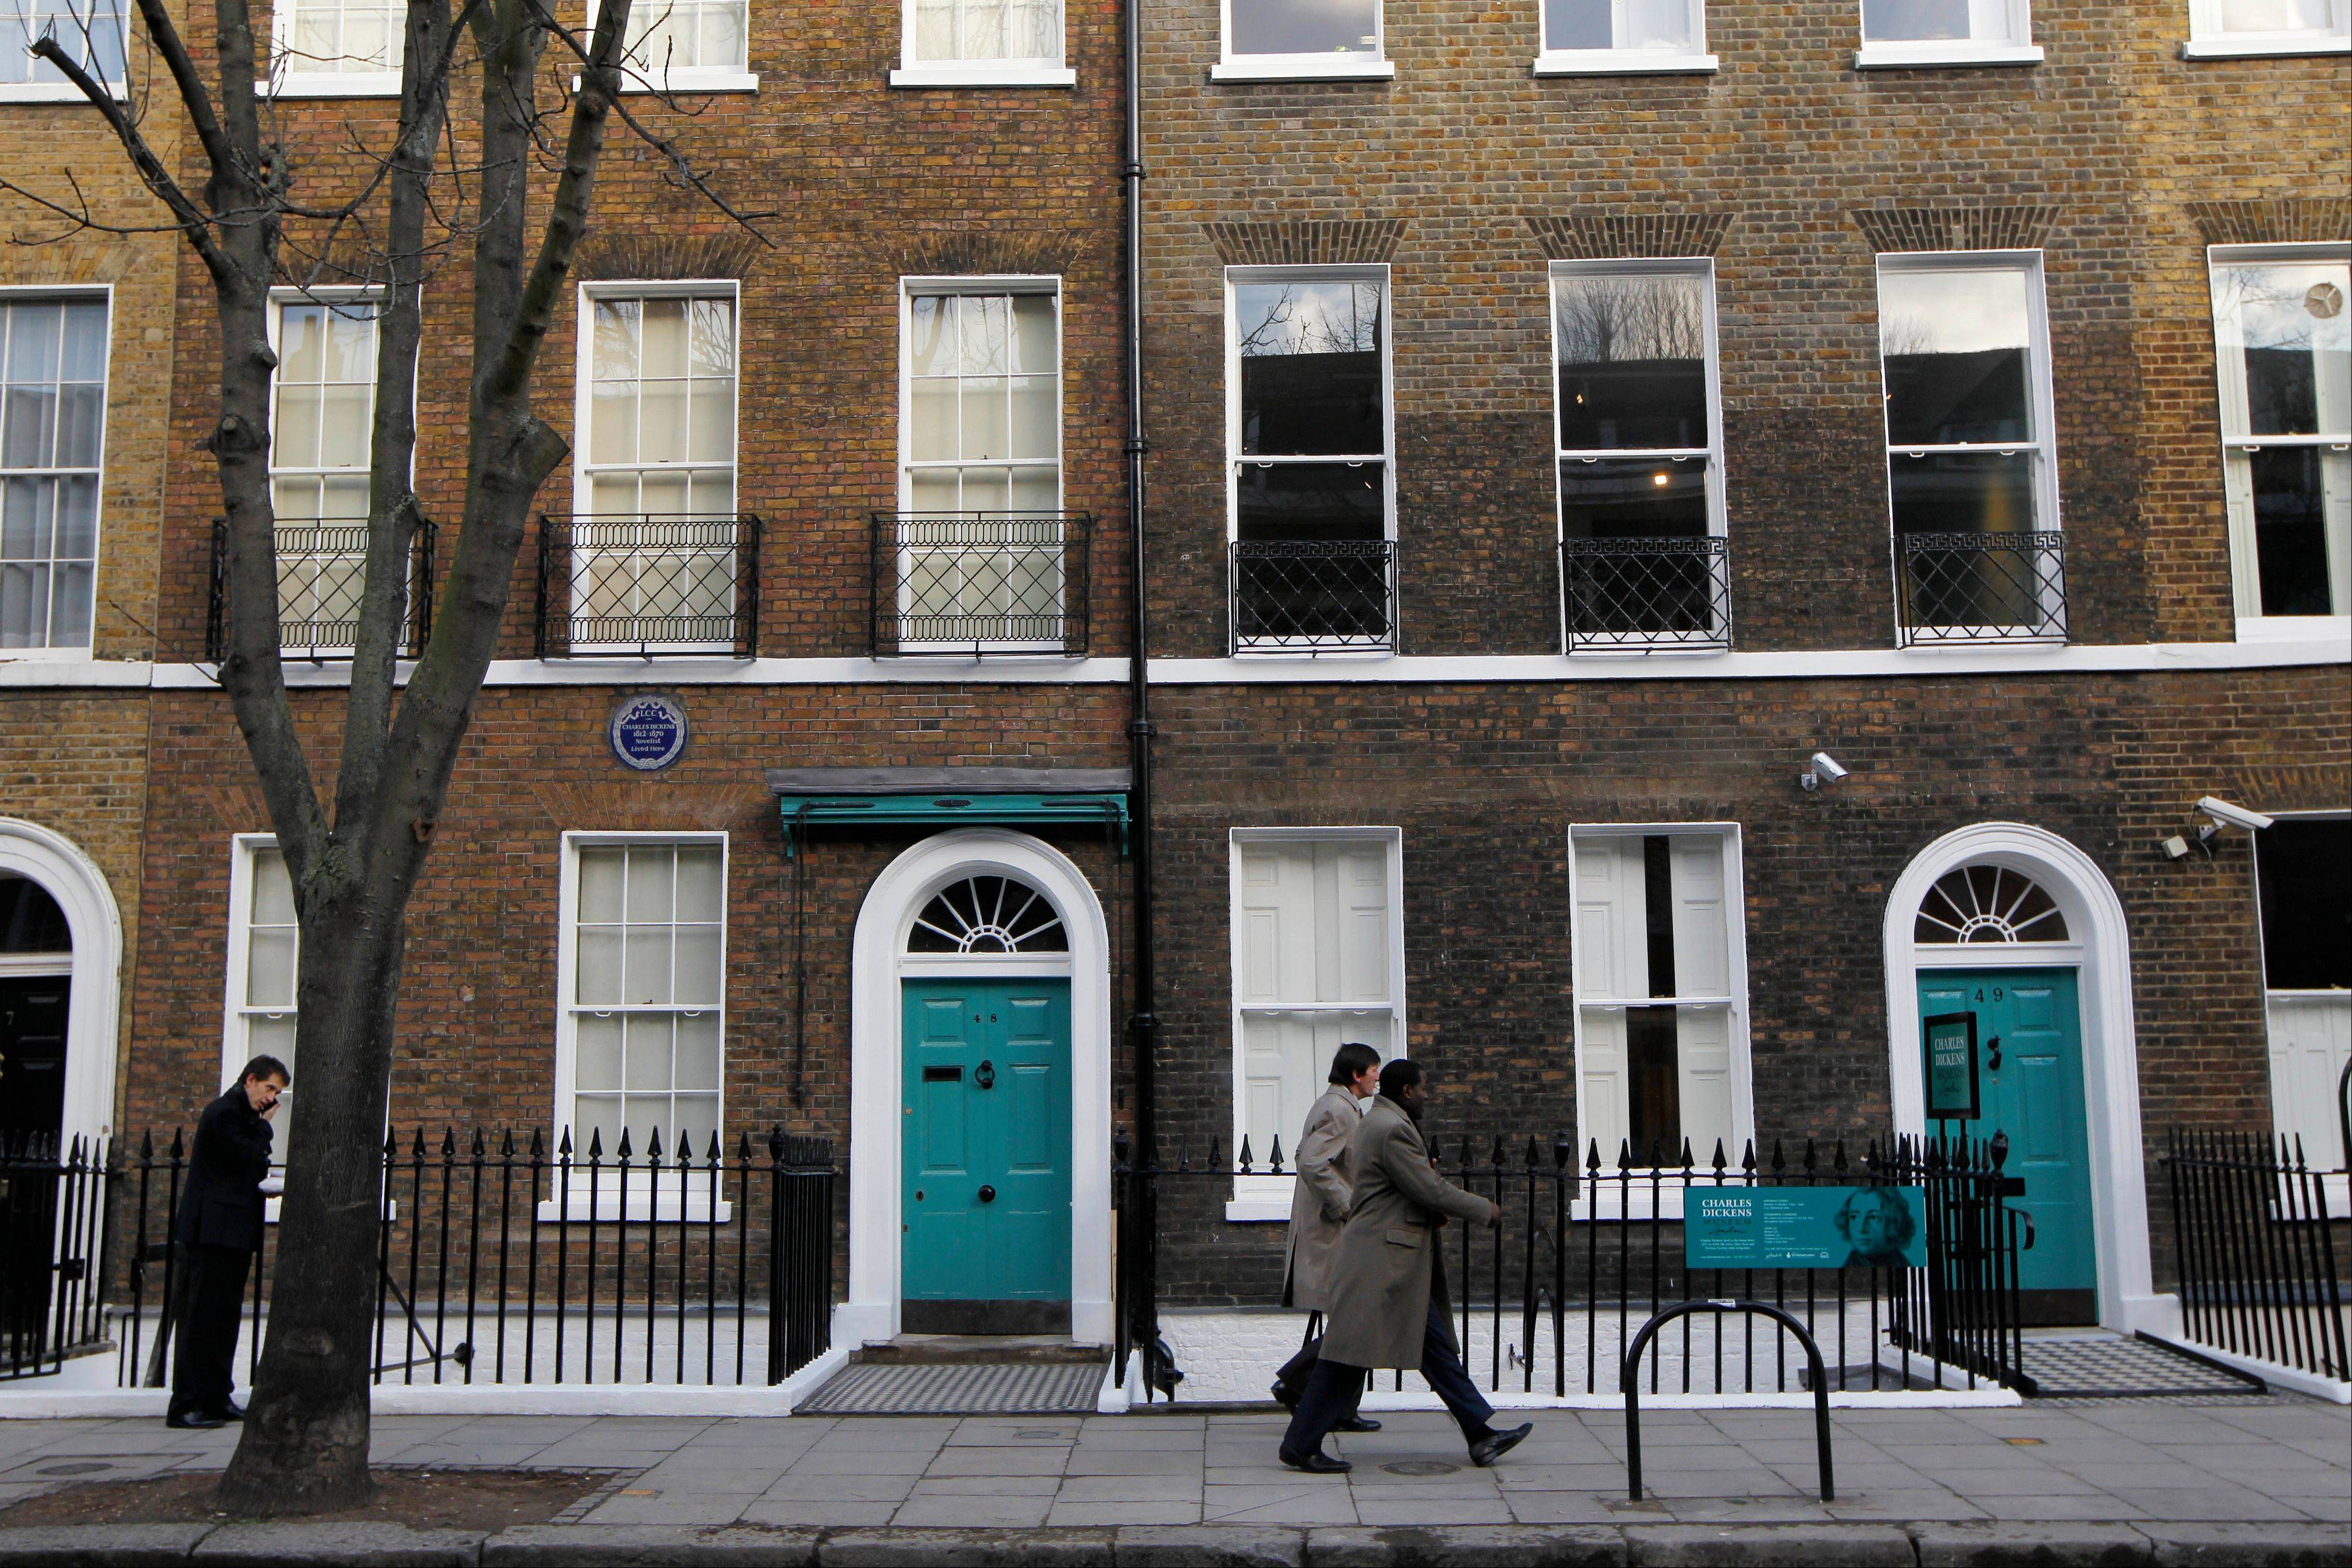 People walk past Charles Dickens� home, left, part of the Charles Dickens Museum in London. For years, the four-story brick row house where the author lived with his young family was a neglected museum.